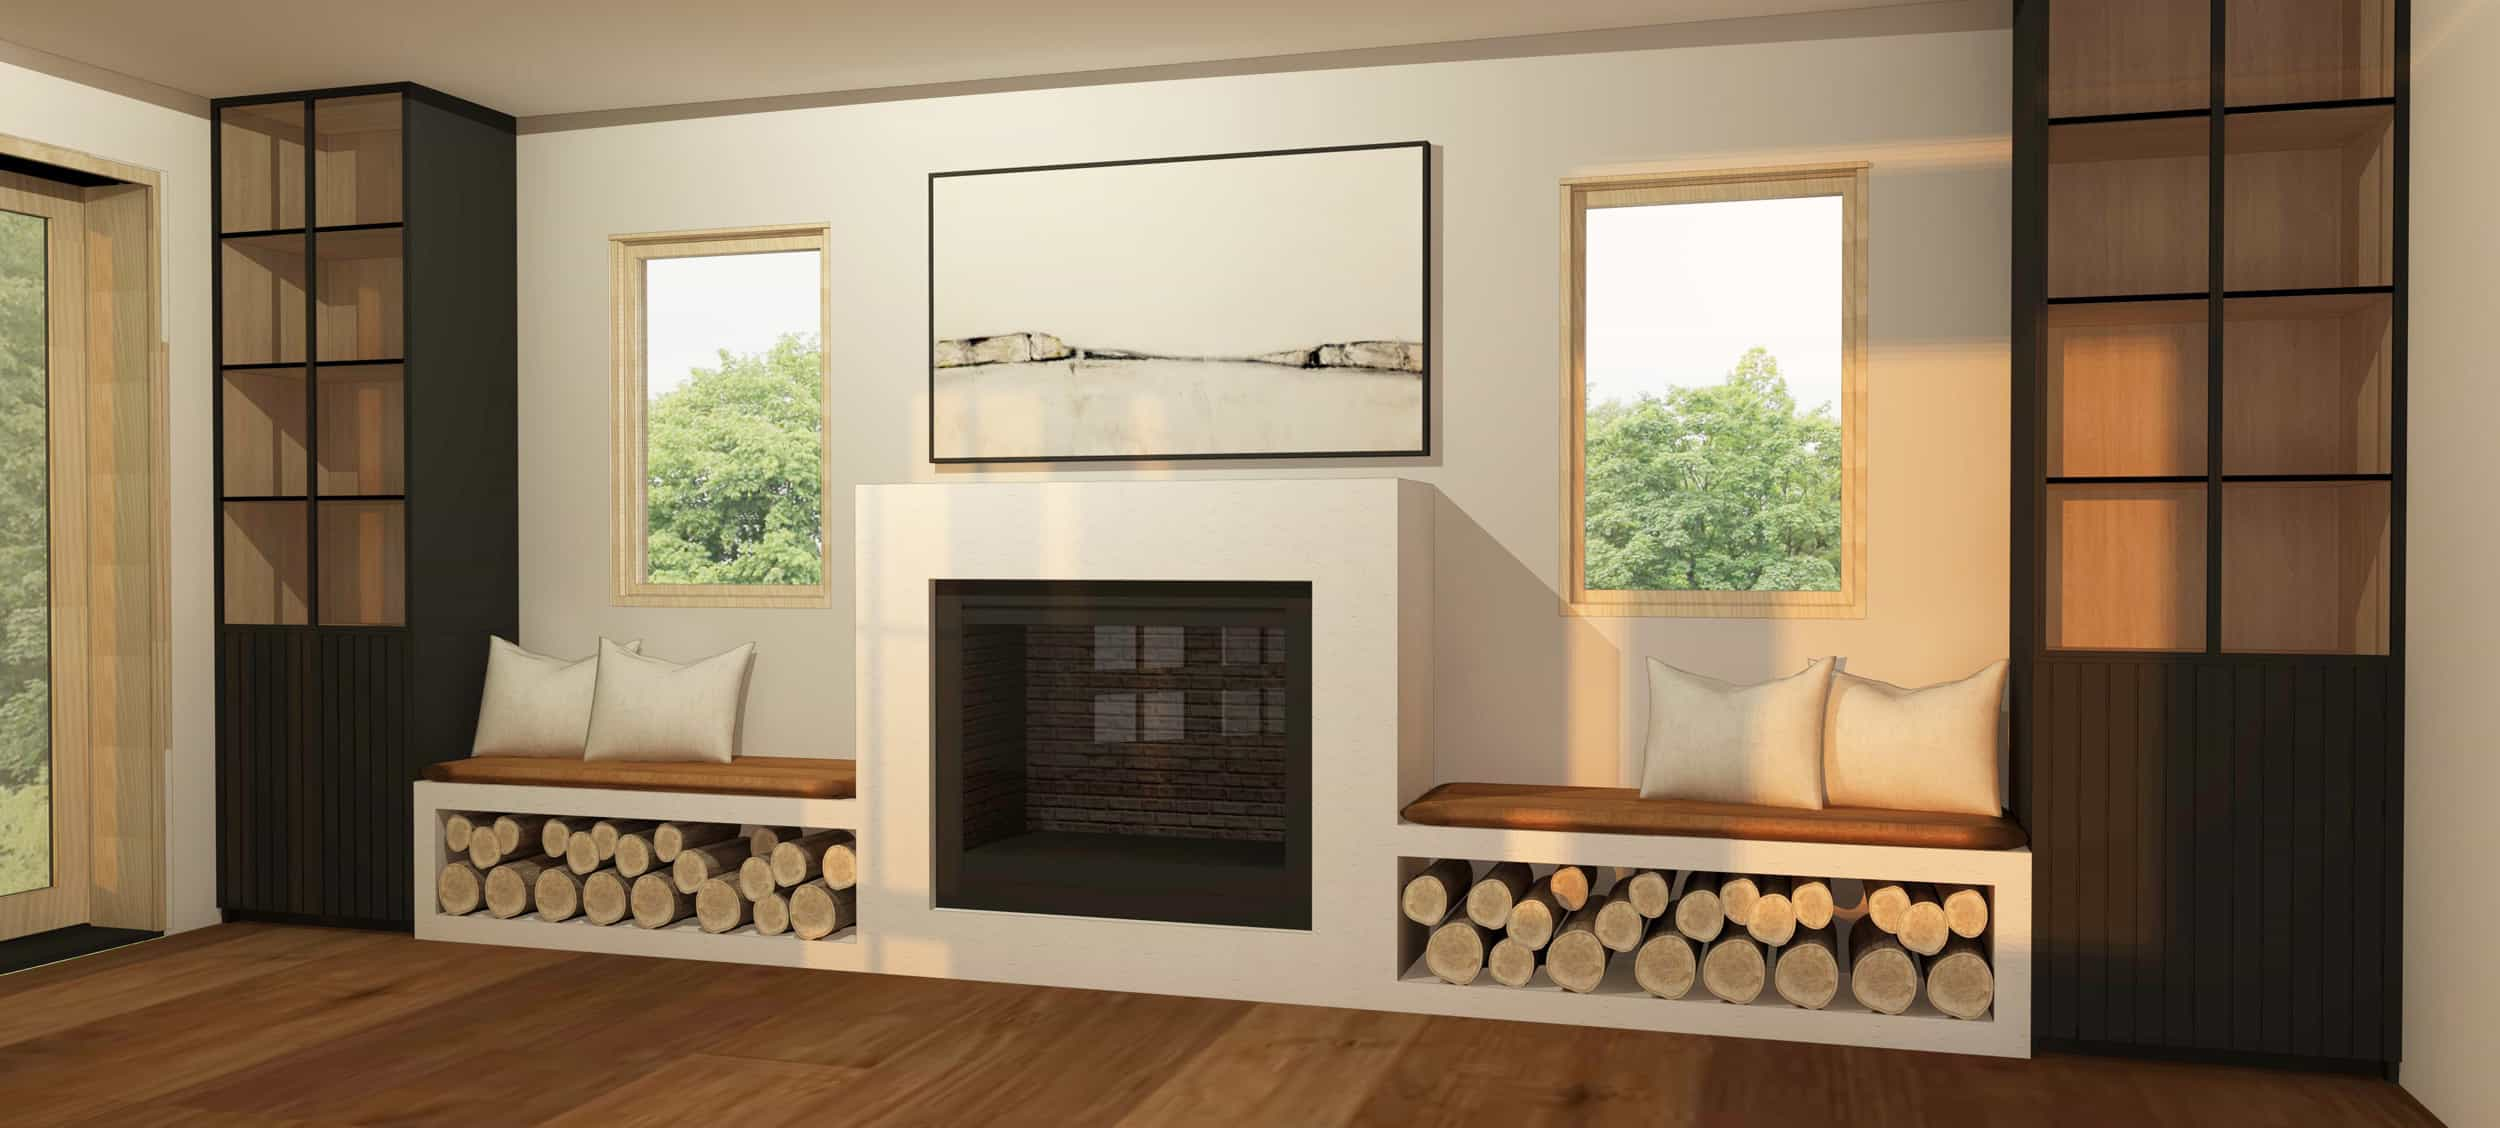 Emily Henderson Mountain Fixer Upper Family Room Fireplace Render 02